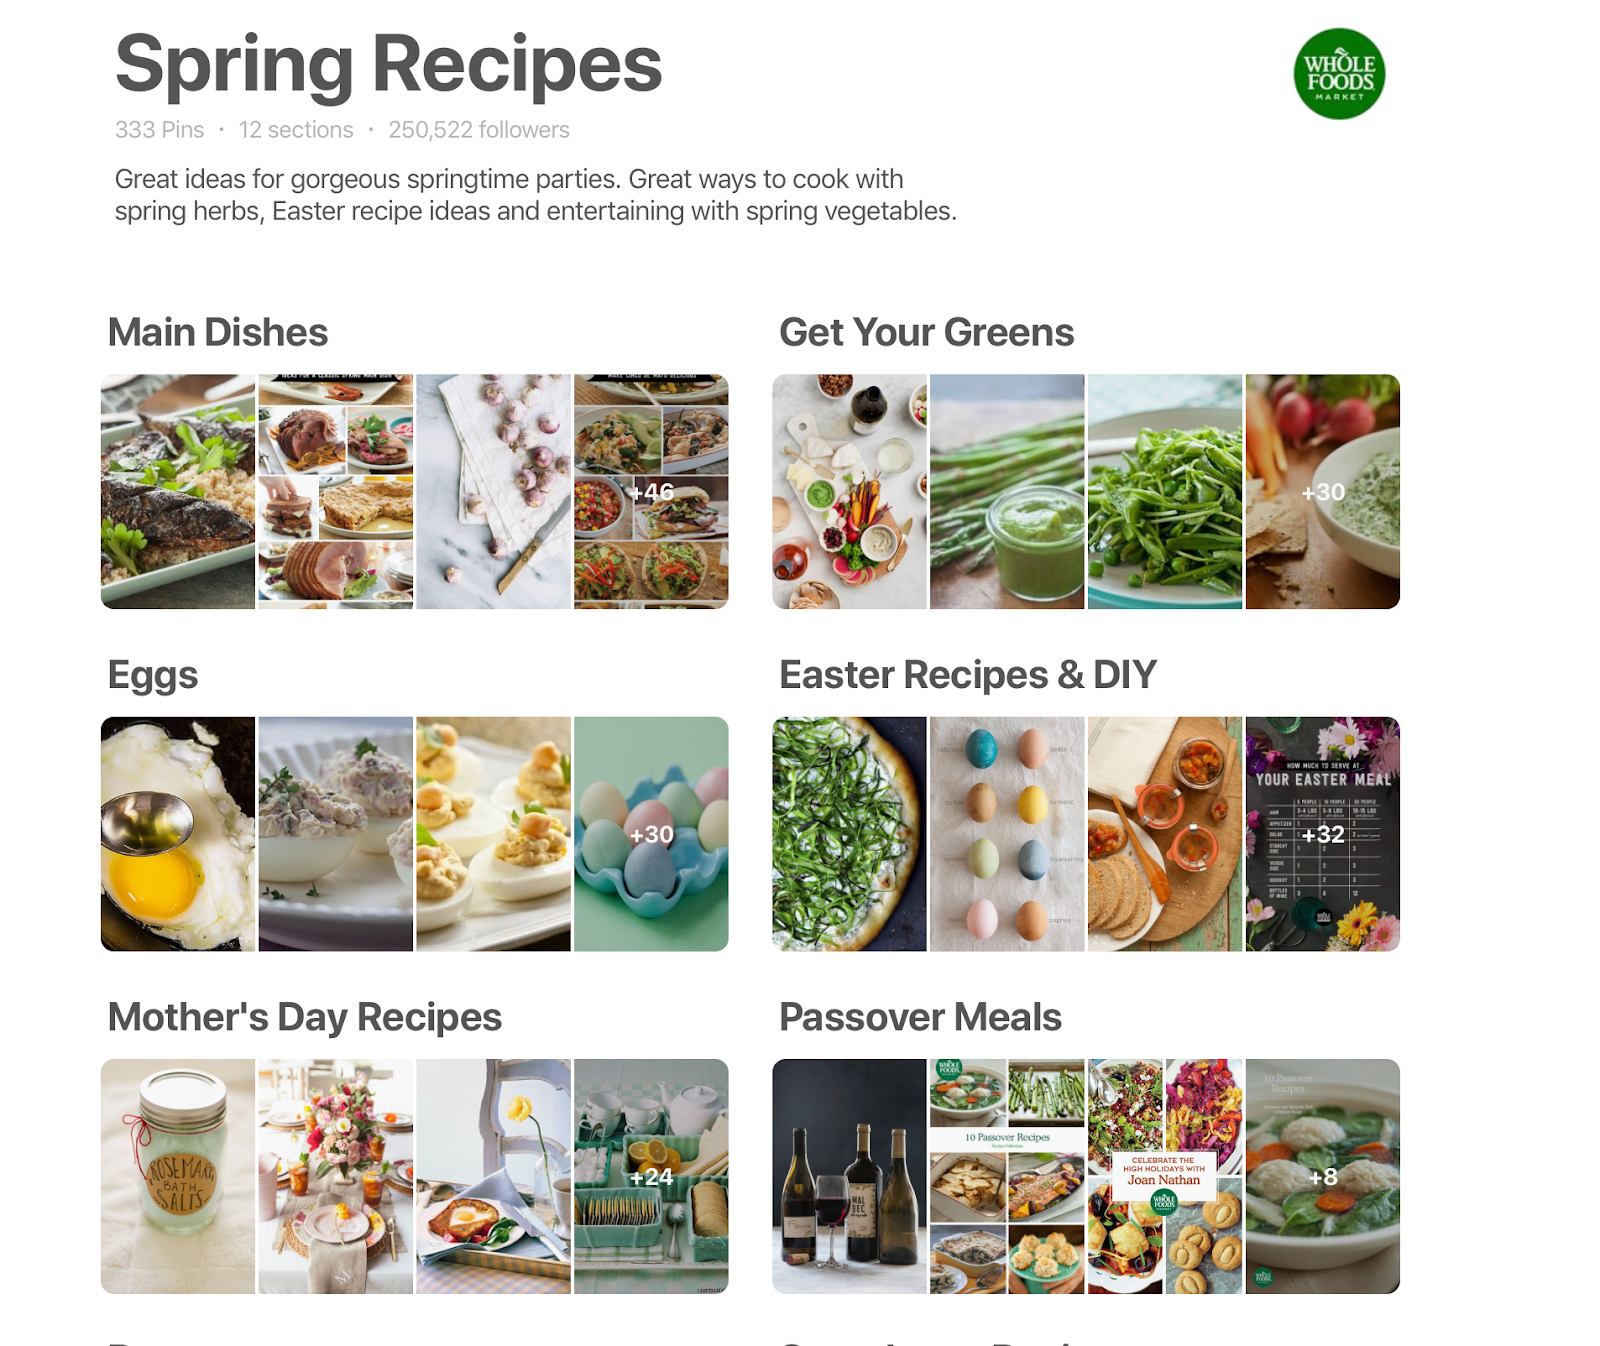 Whole Foods spring recipes board